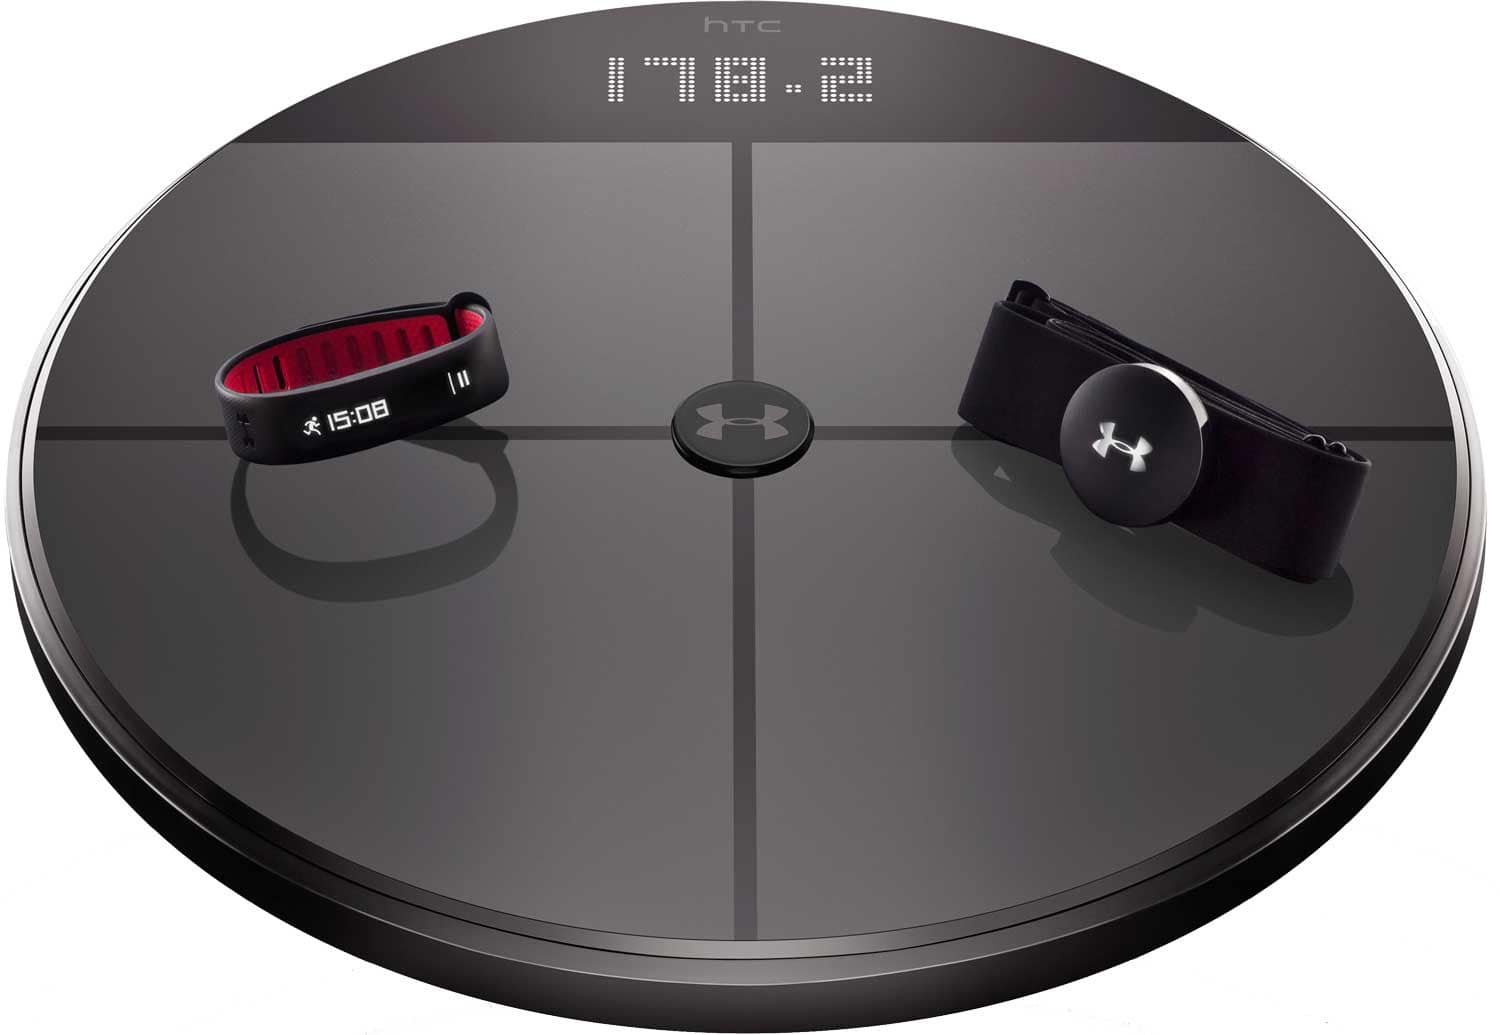 Under Armour Healthbox Fitness Band, HRM and Scale Bundle $79.99 FS